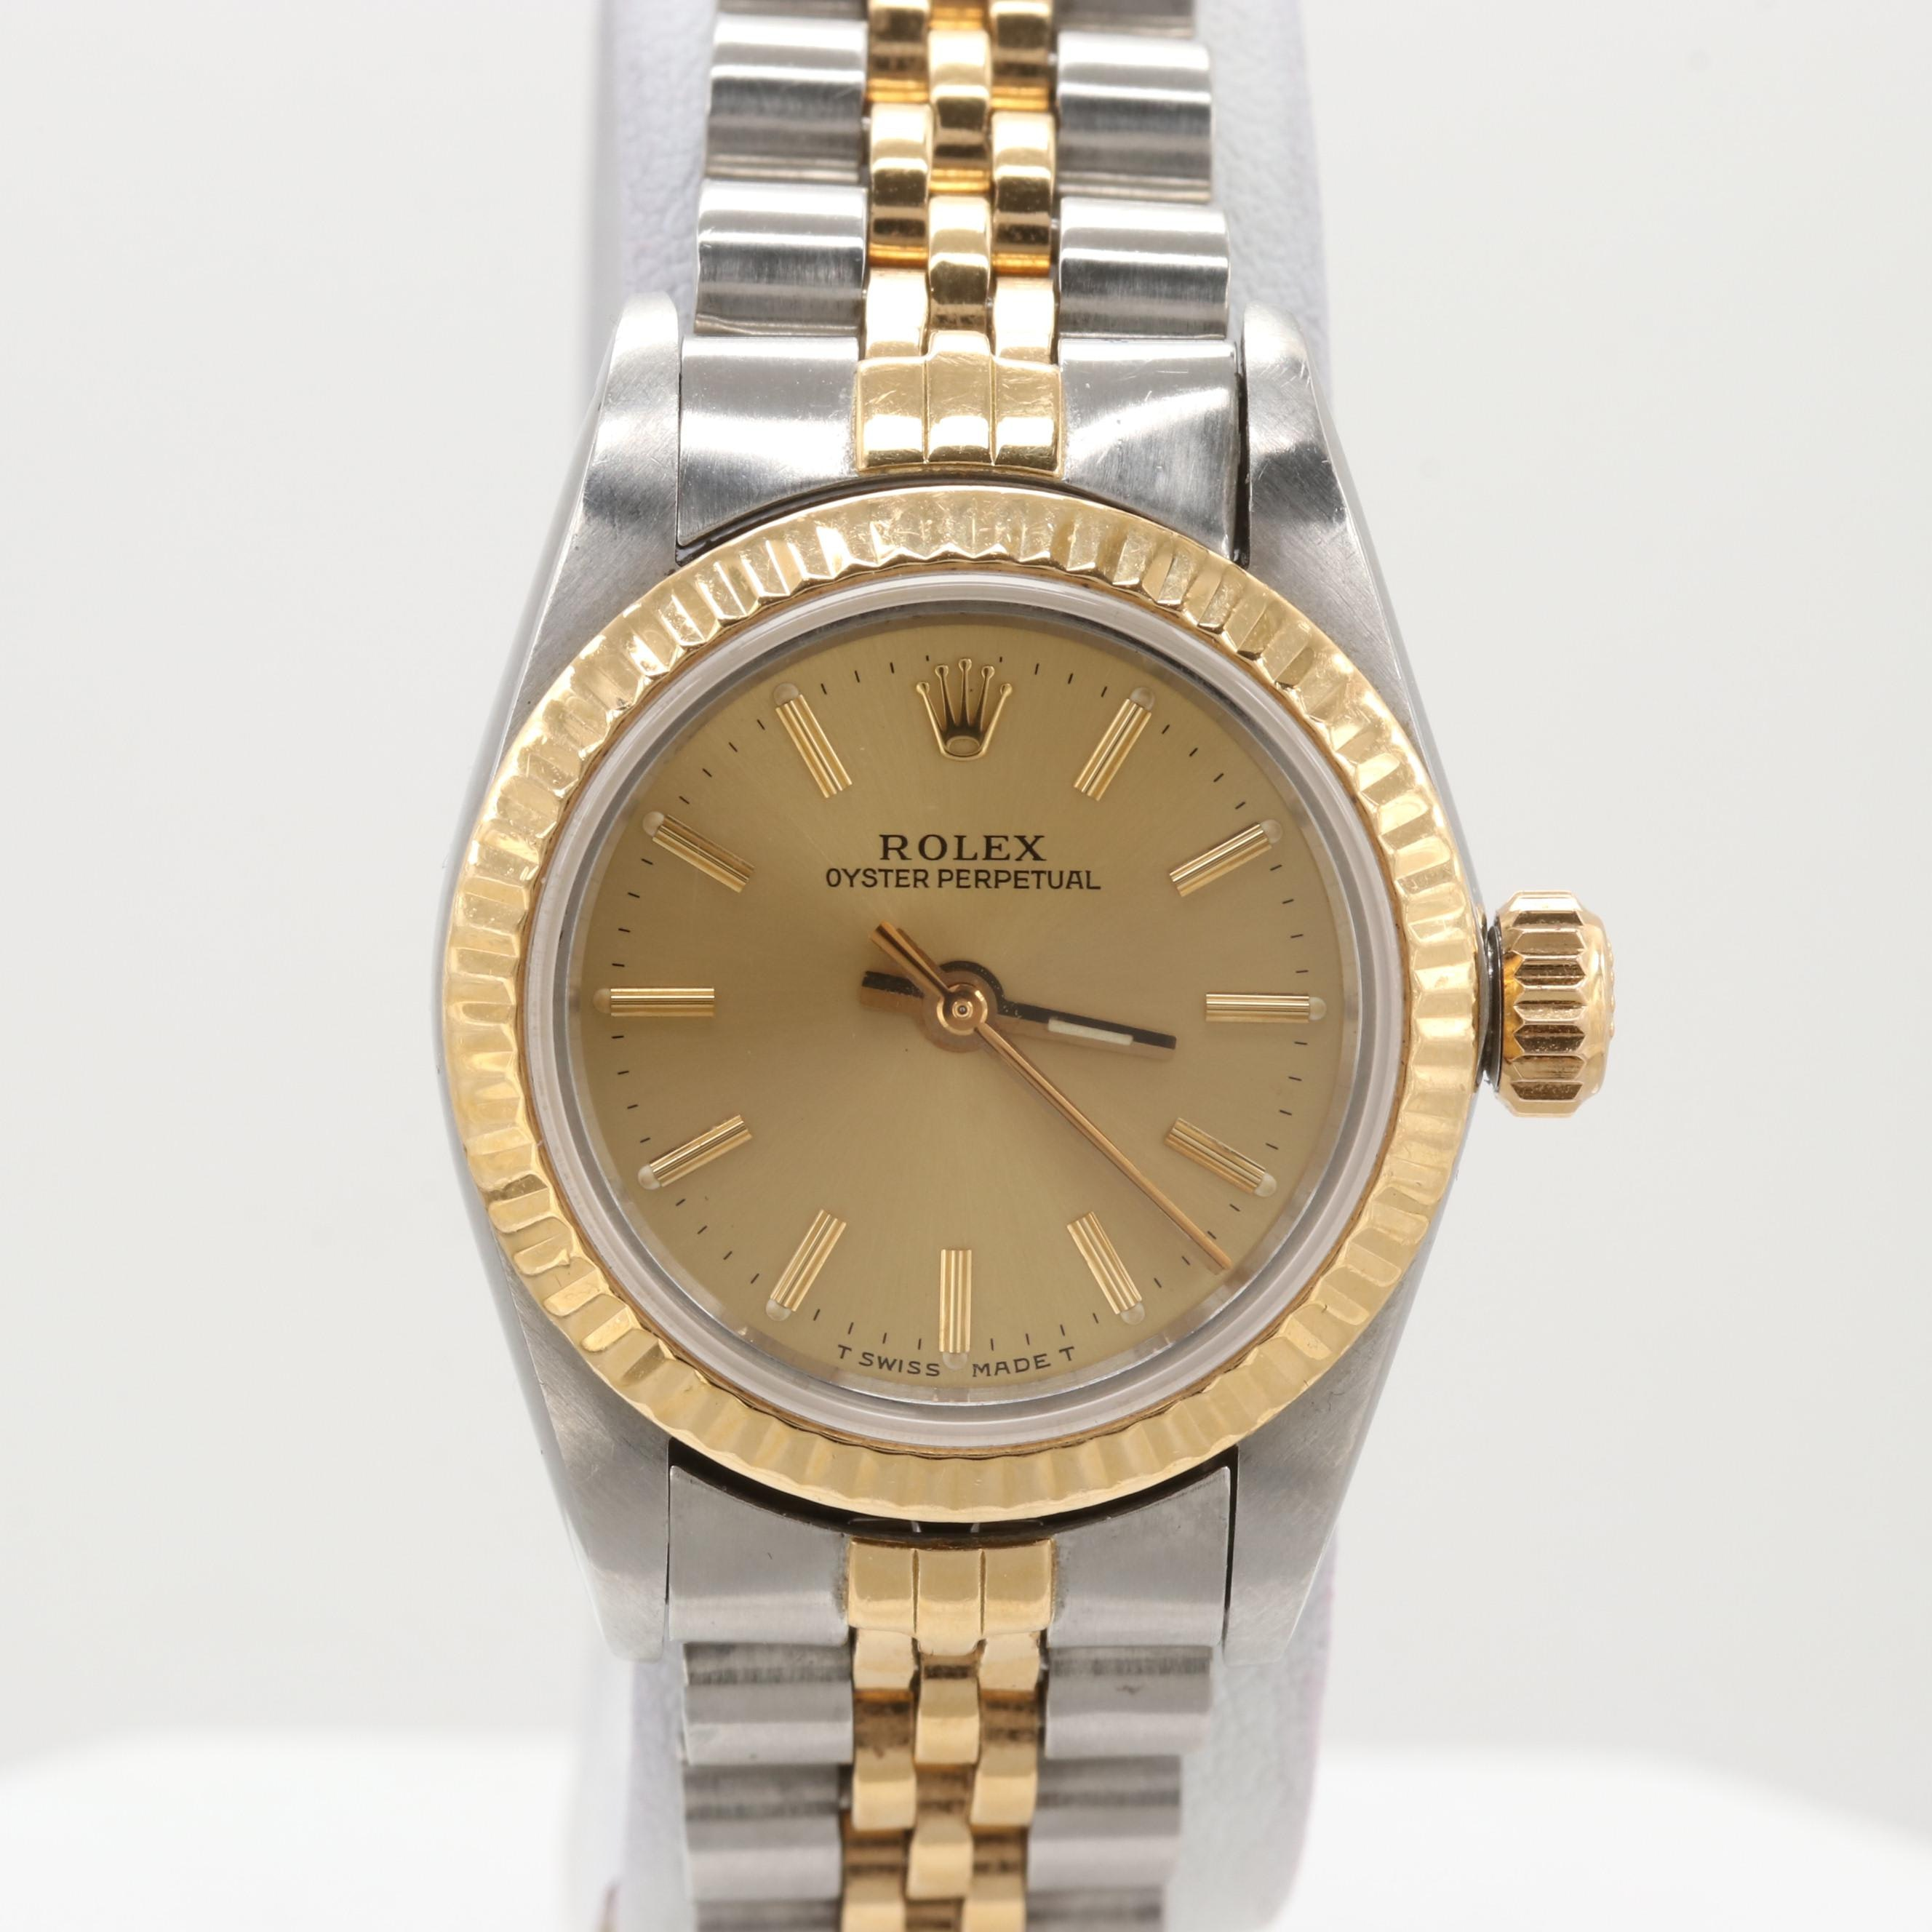 Rolex Oyster Perpetual Stainless Steel and 18K Yellow Gold Wristwatch, 1989